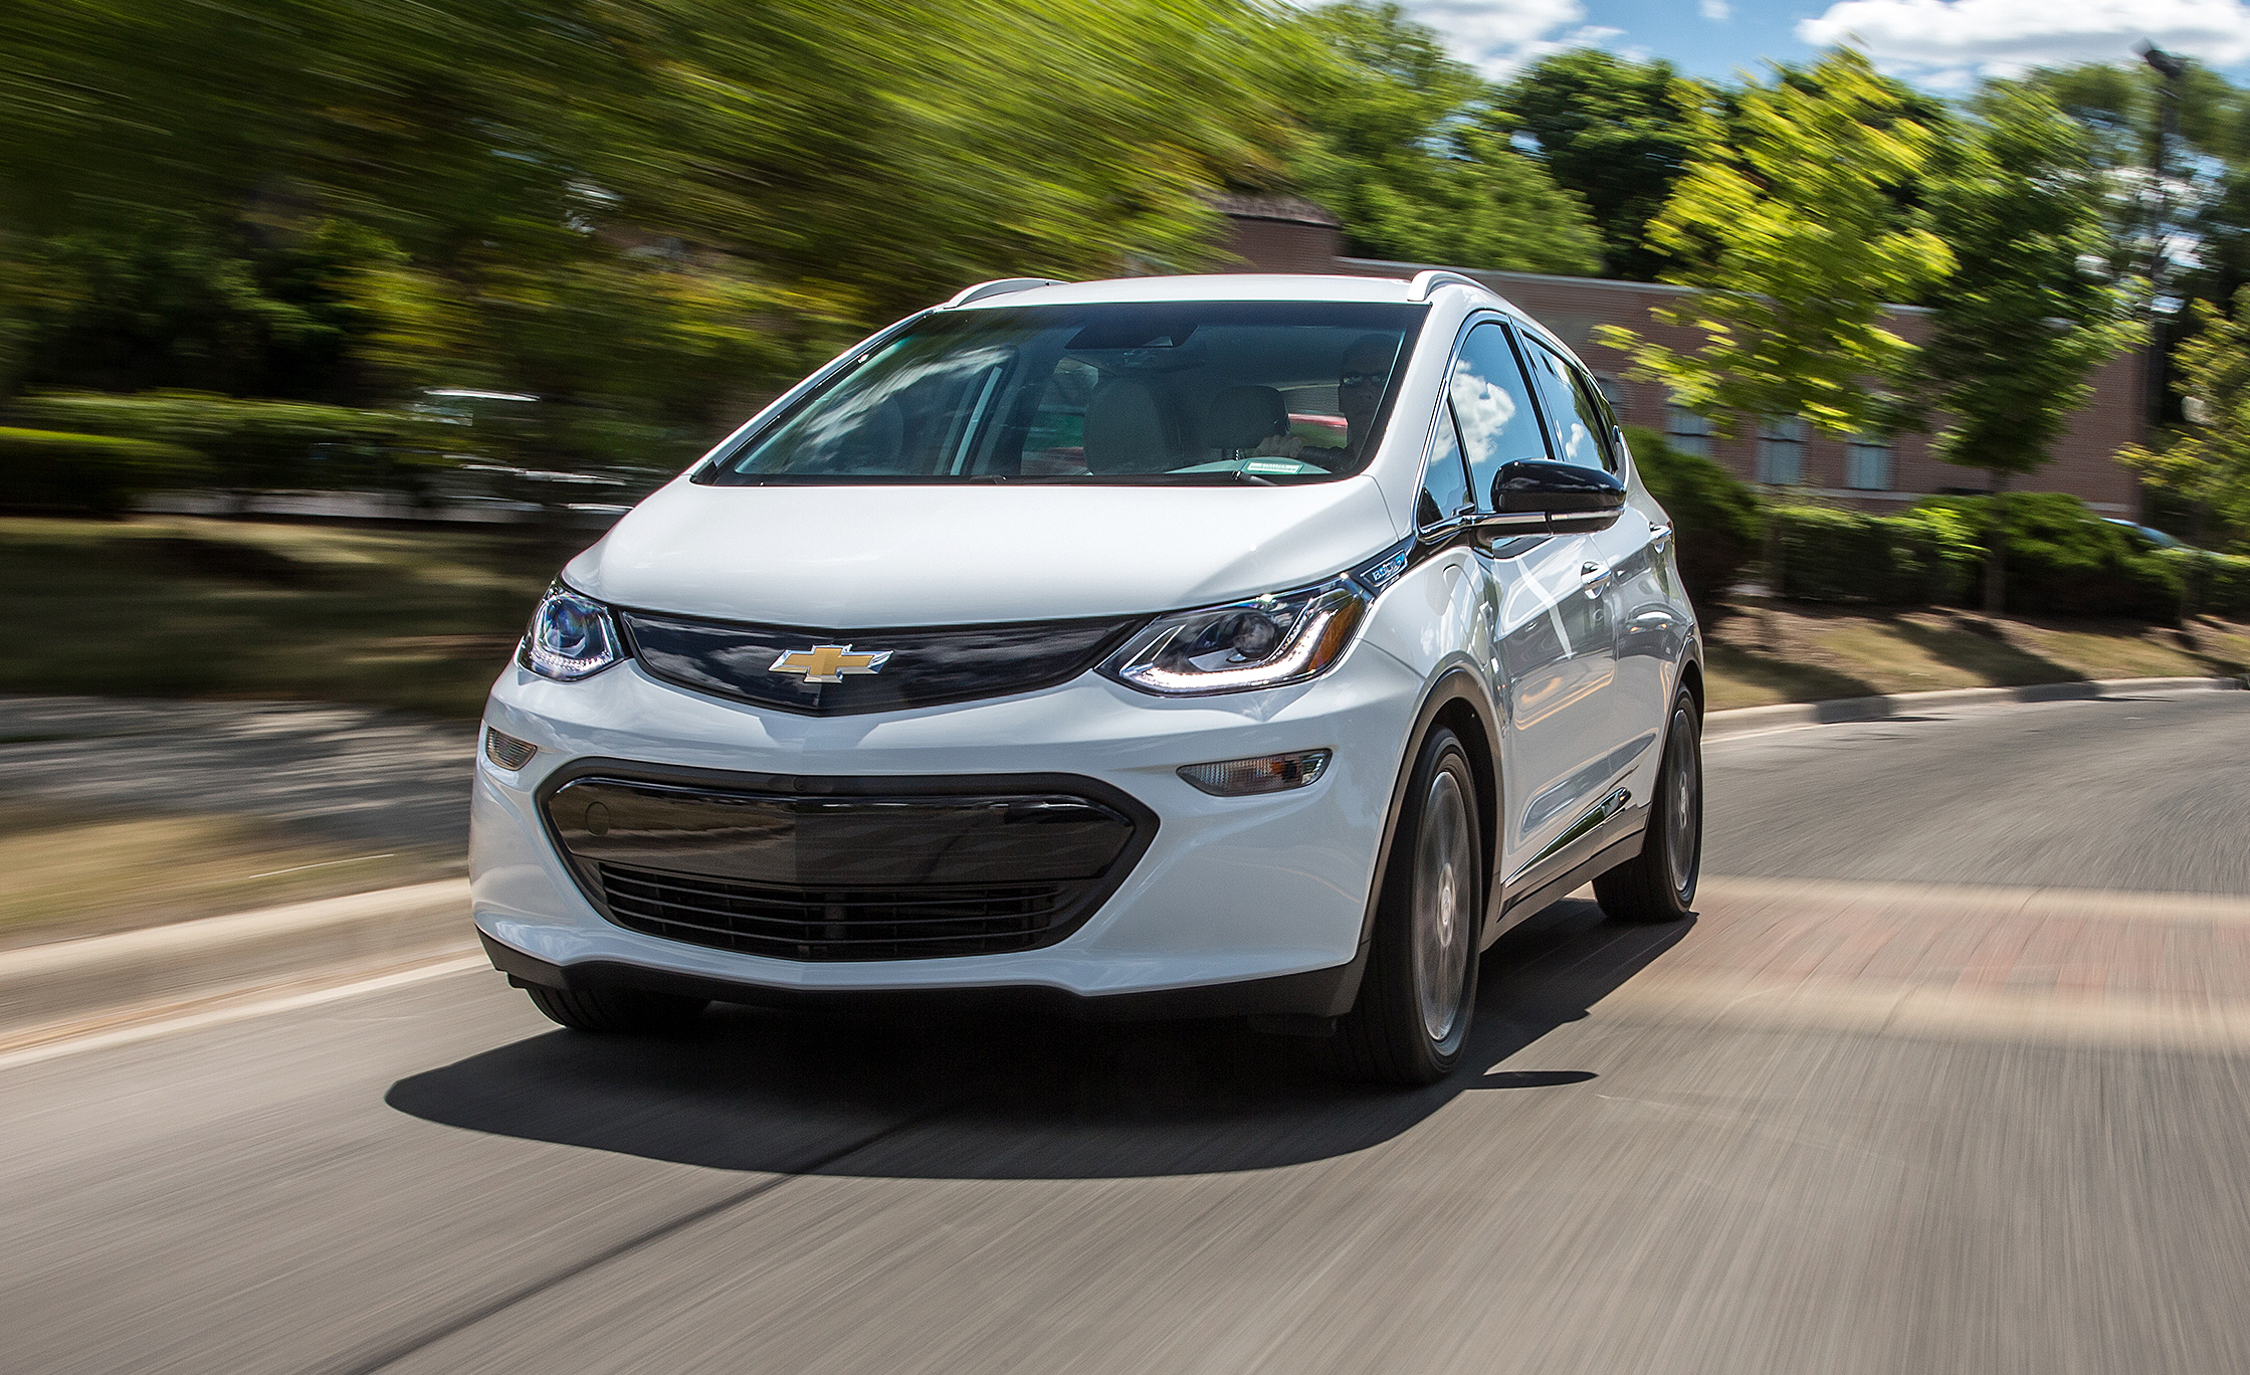 2017 Chevrolet Bolt Ev Preview (View 3 of 12)